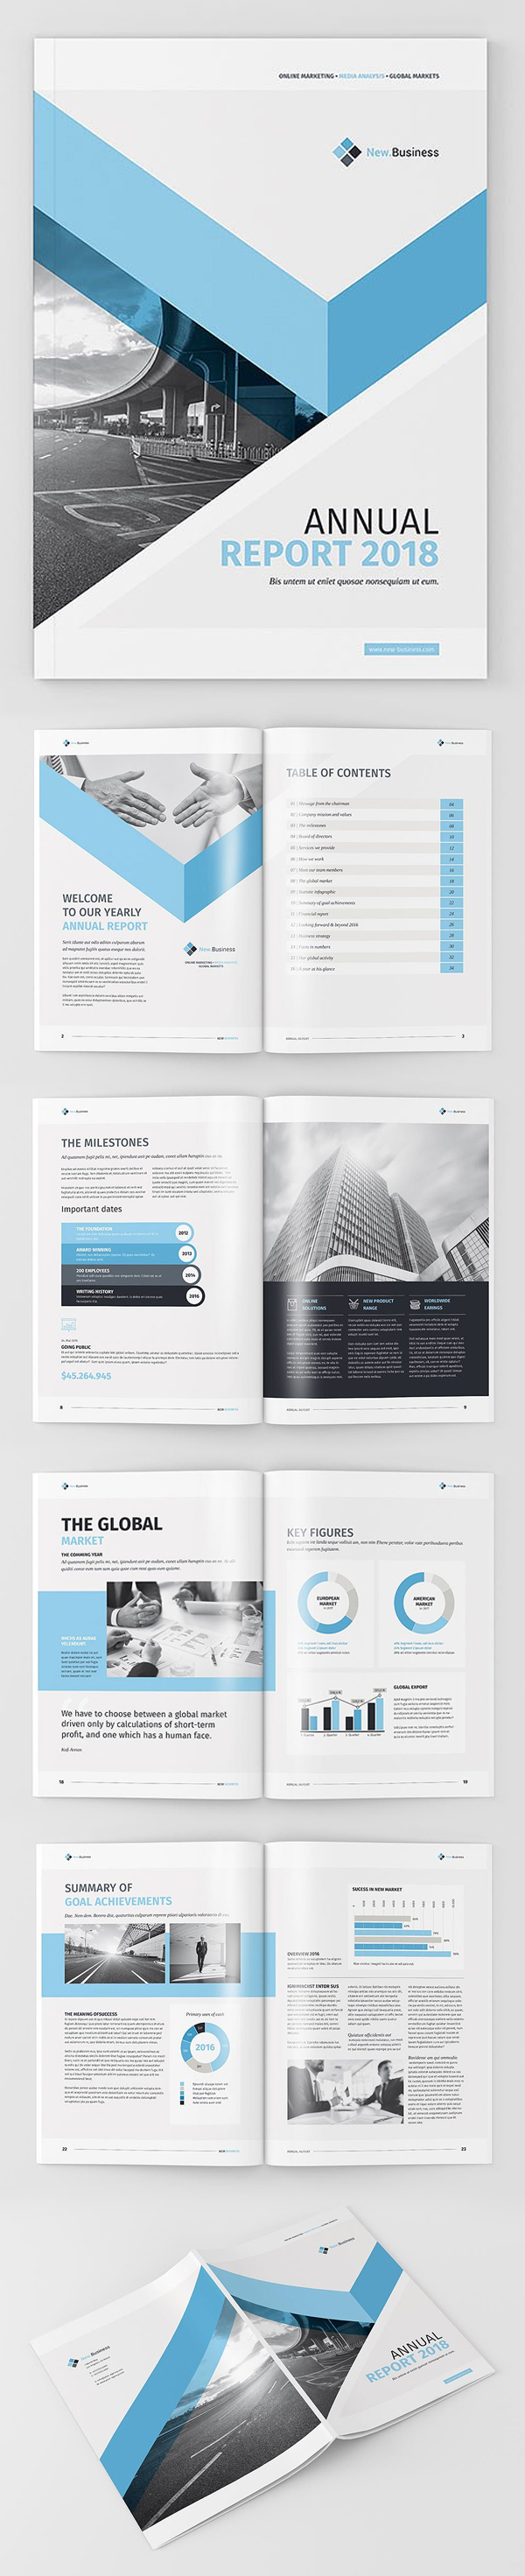 100 Professional Corporate Brochure Templates - 37